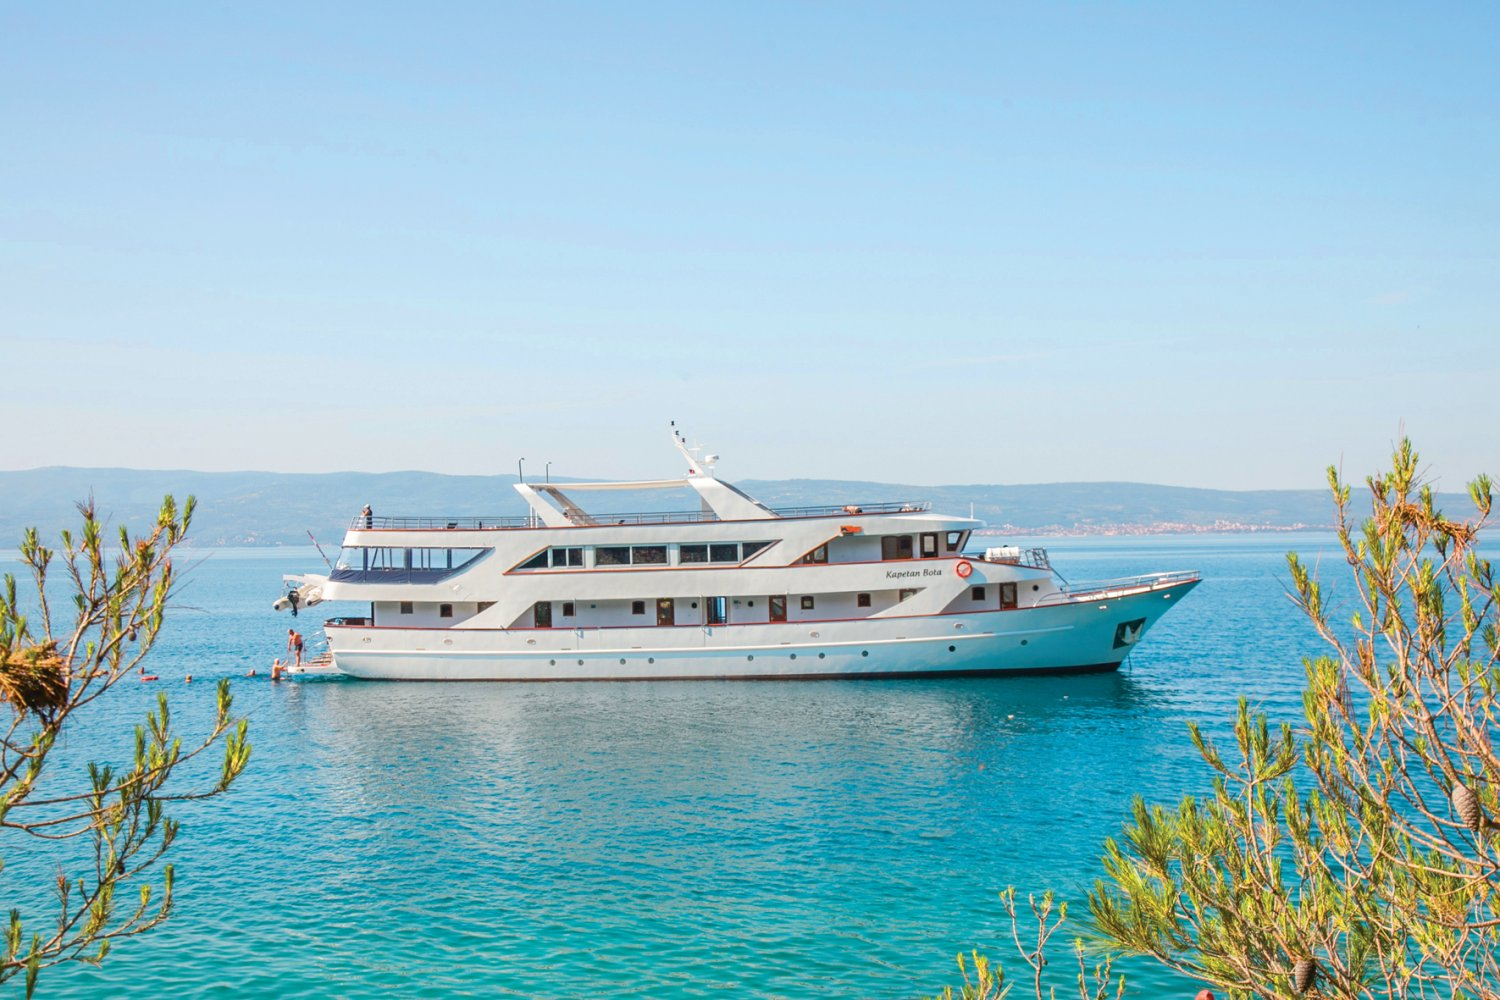 MS Captain Bota, Croatian island hopping